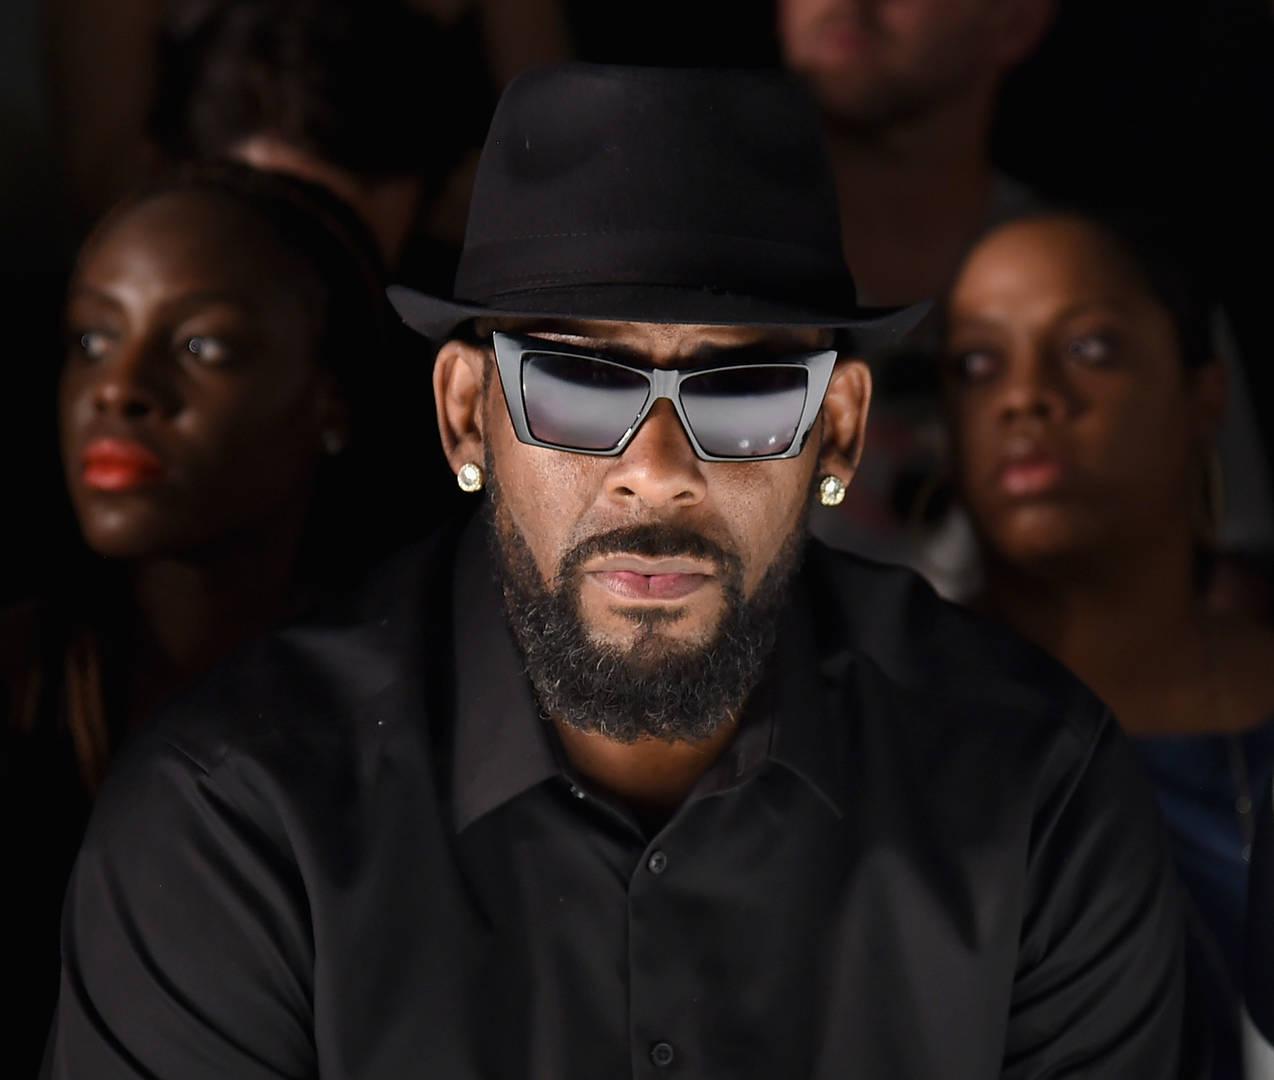 R. Kelly charged with 10 counts of sex abuse, says official